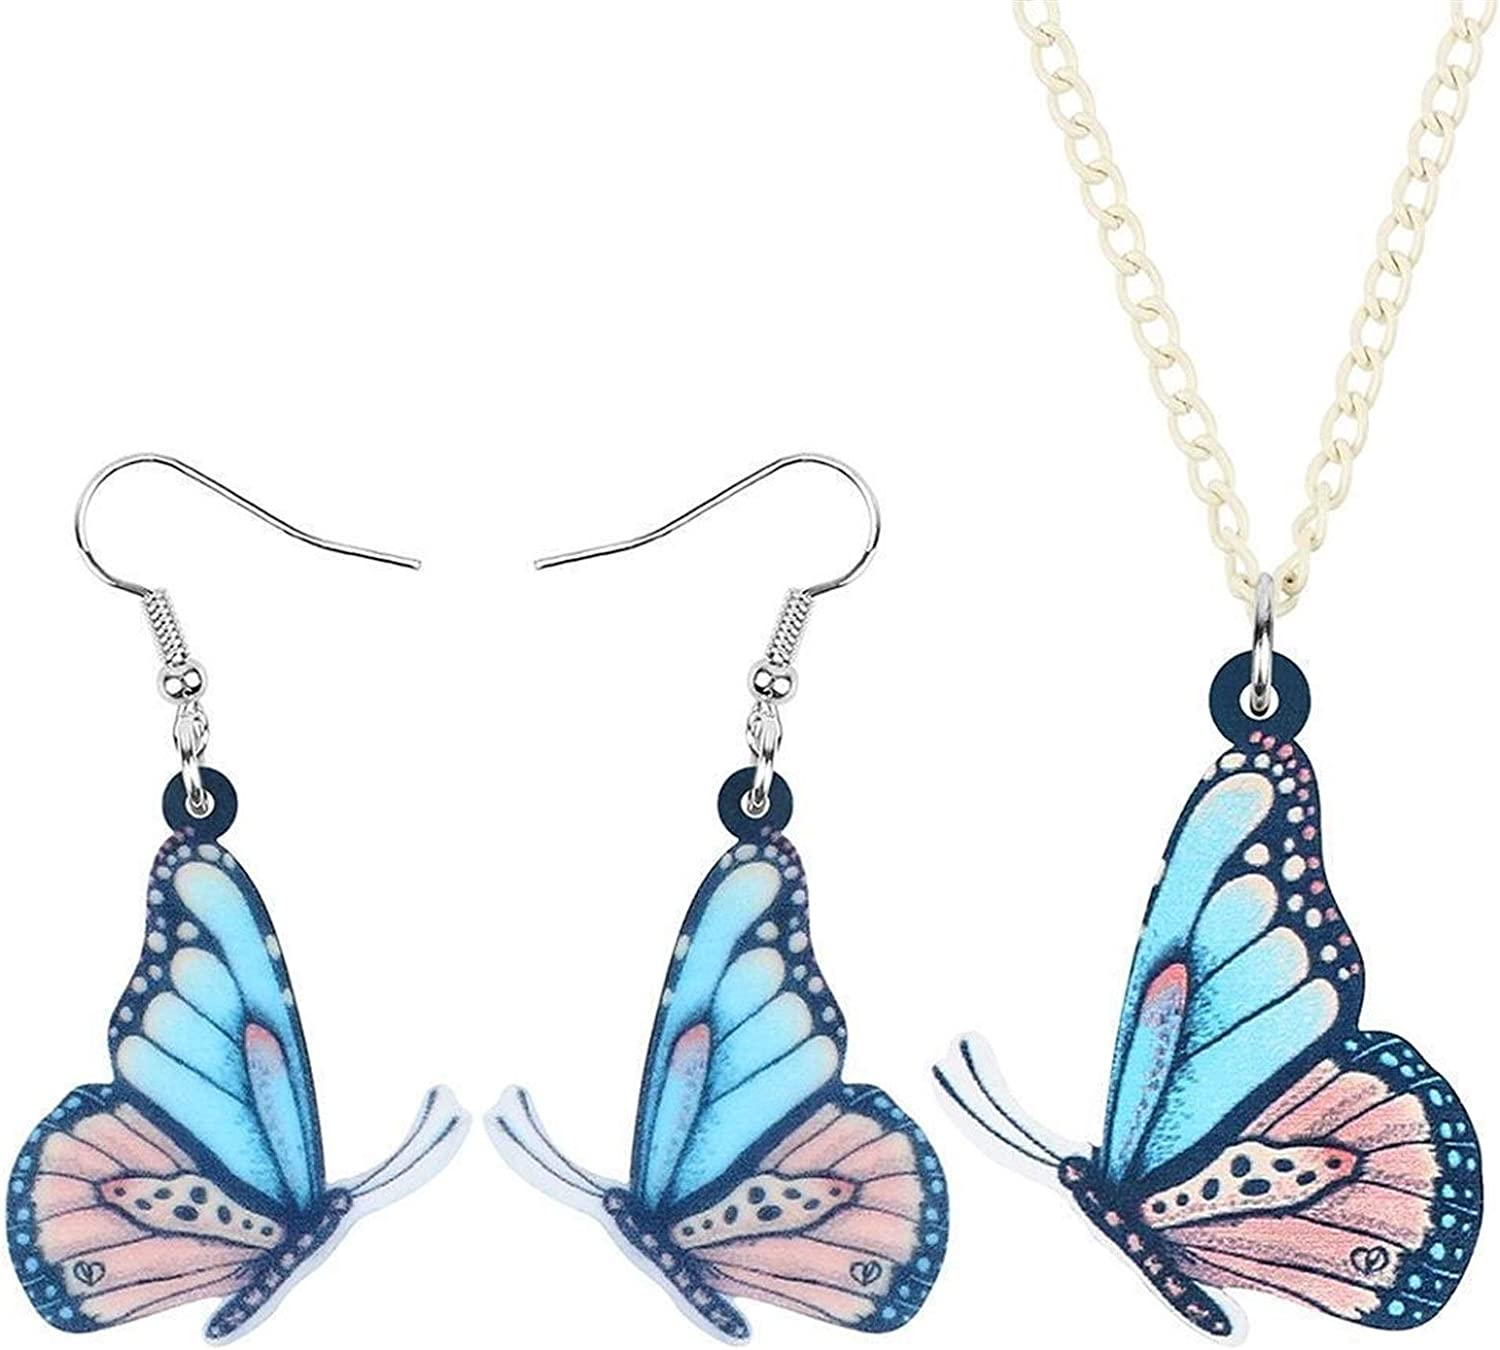 Necklace Acrylic Branded goods Footed Jewelry fo Animal Max 84% OFF Earrings Sets